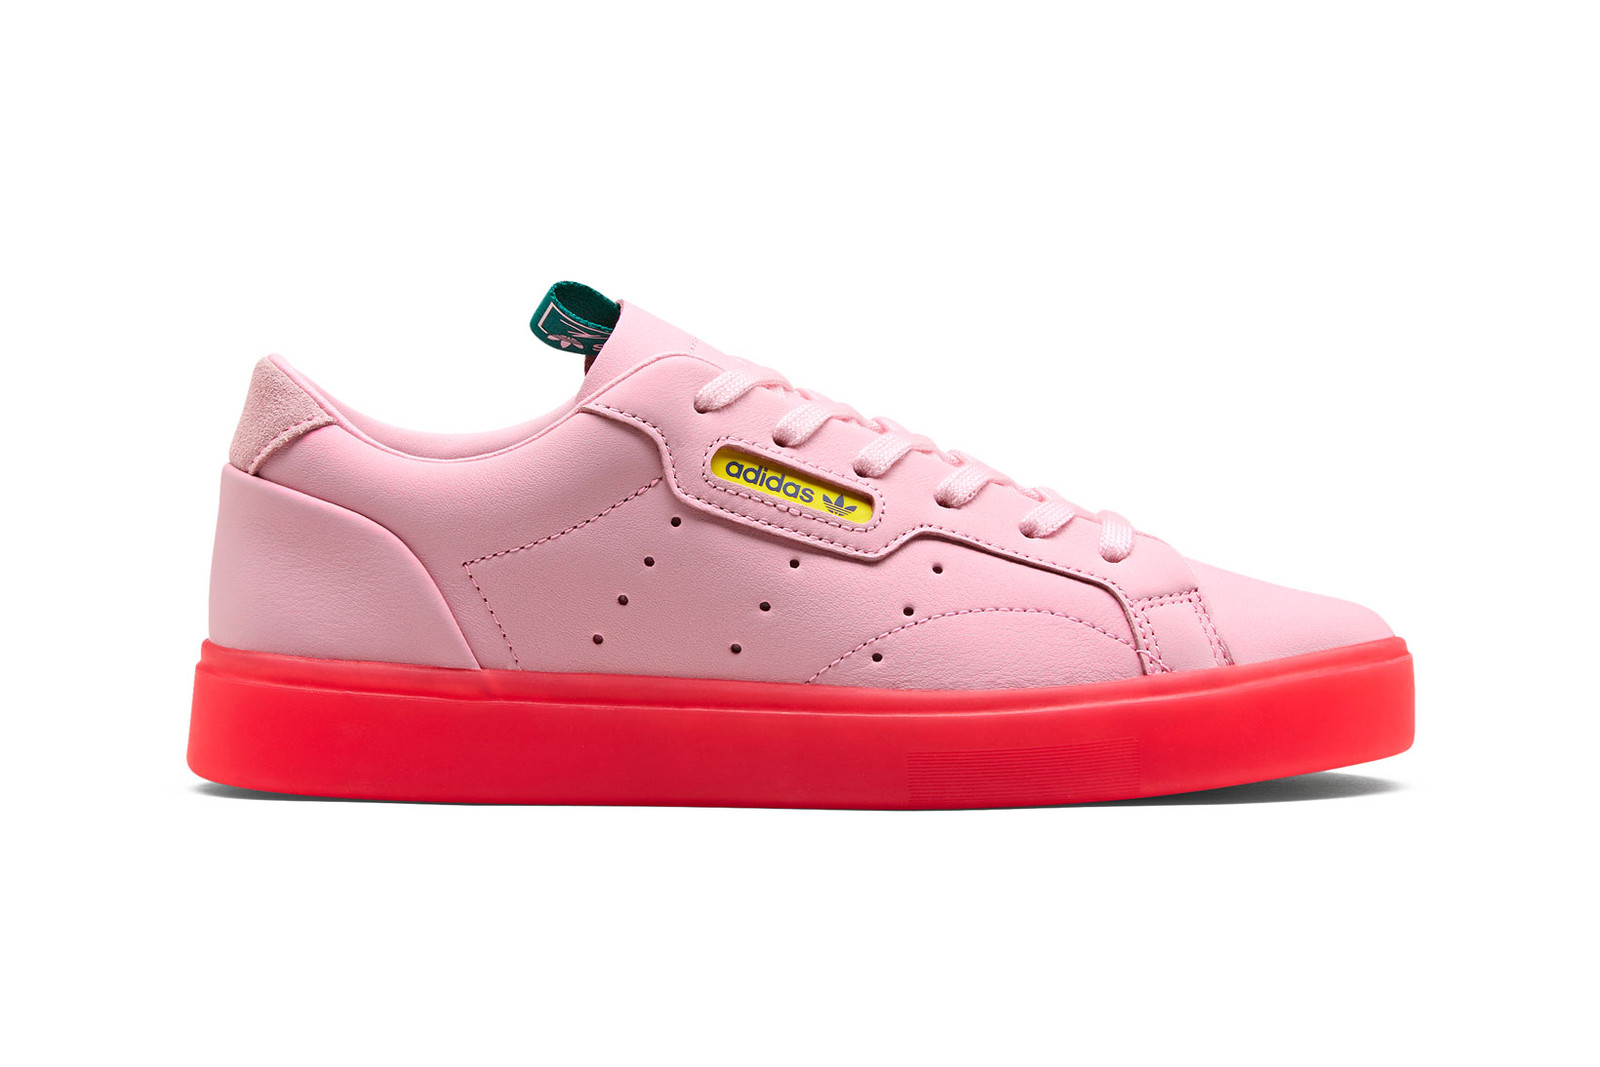 c451ccf27f79 adidas Originals Sleek Pink Red Yellow Pastel Blue